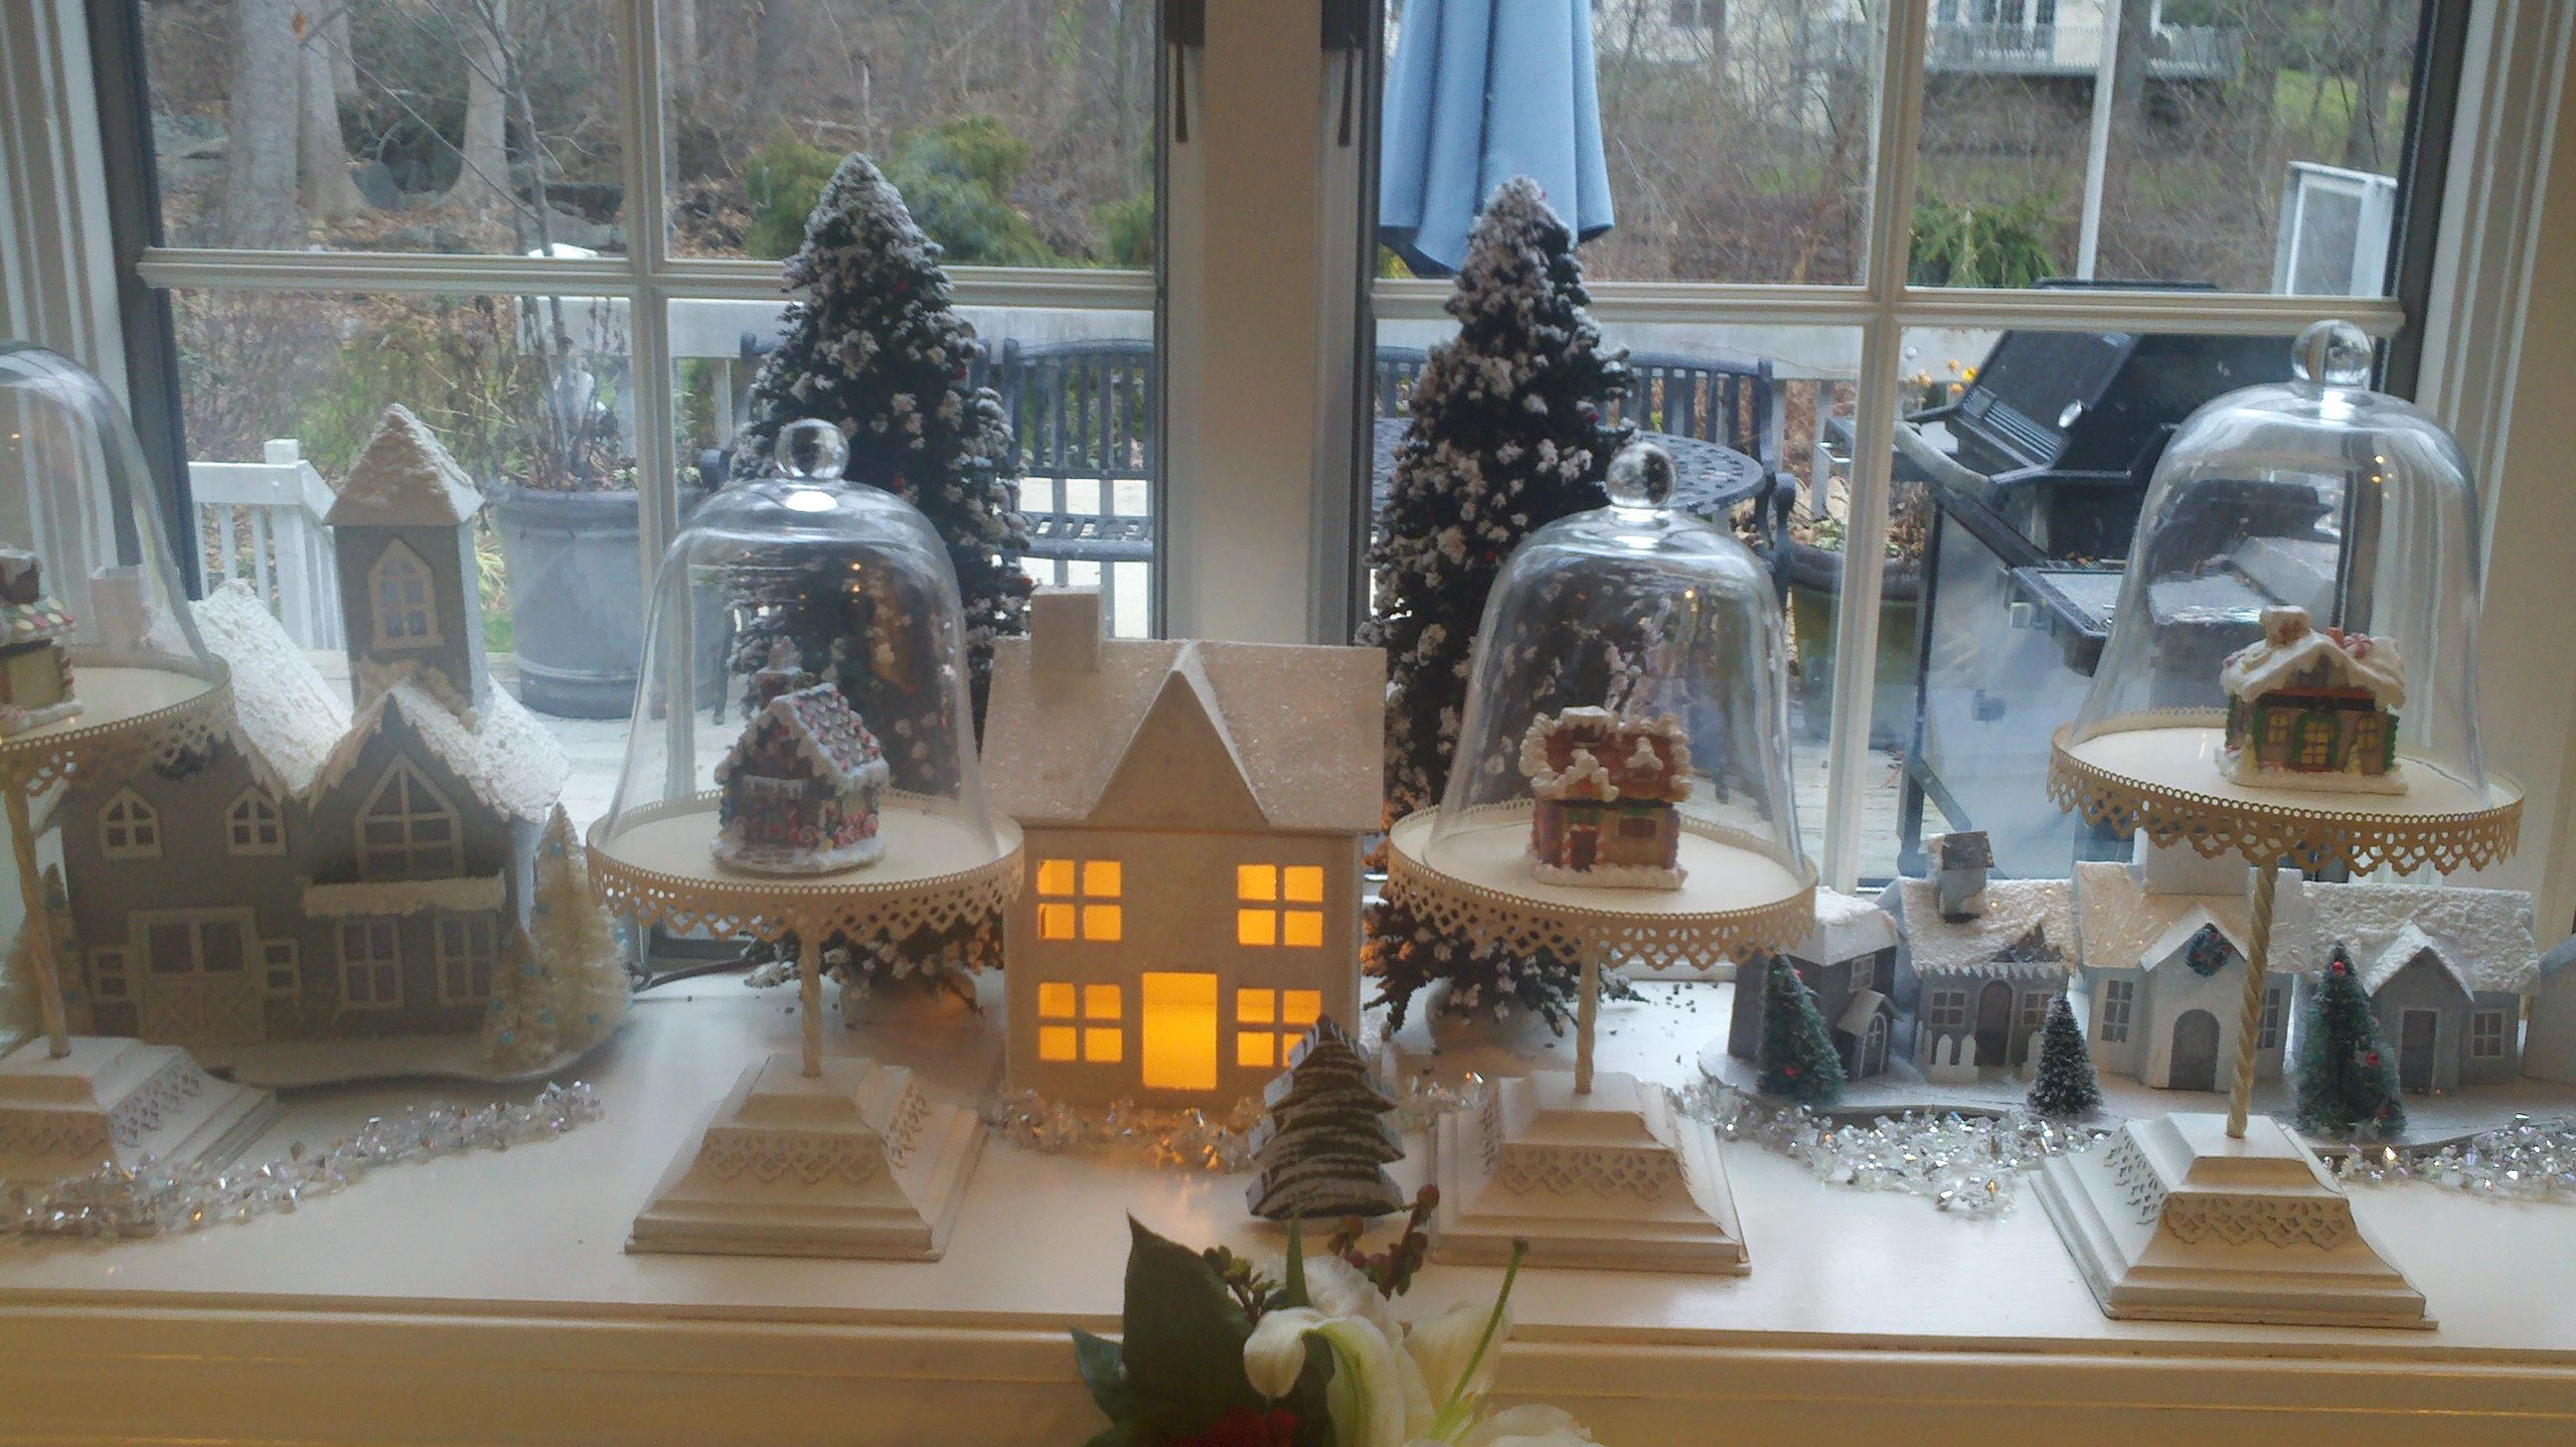 Mini glittered gingerbread houses in cake stands